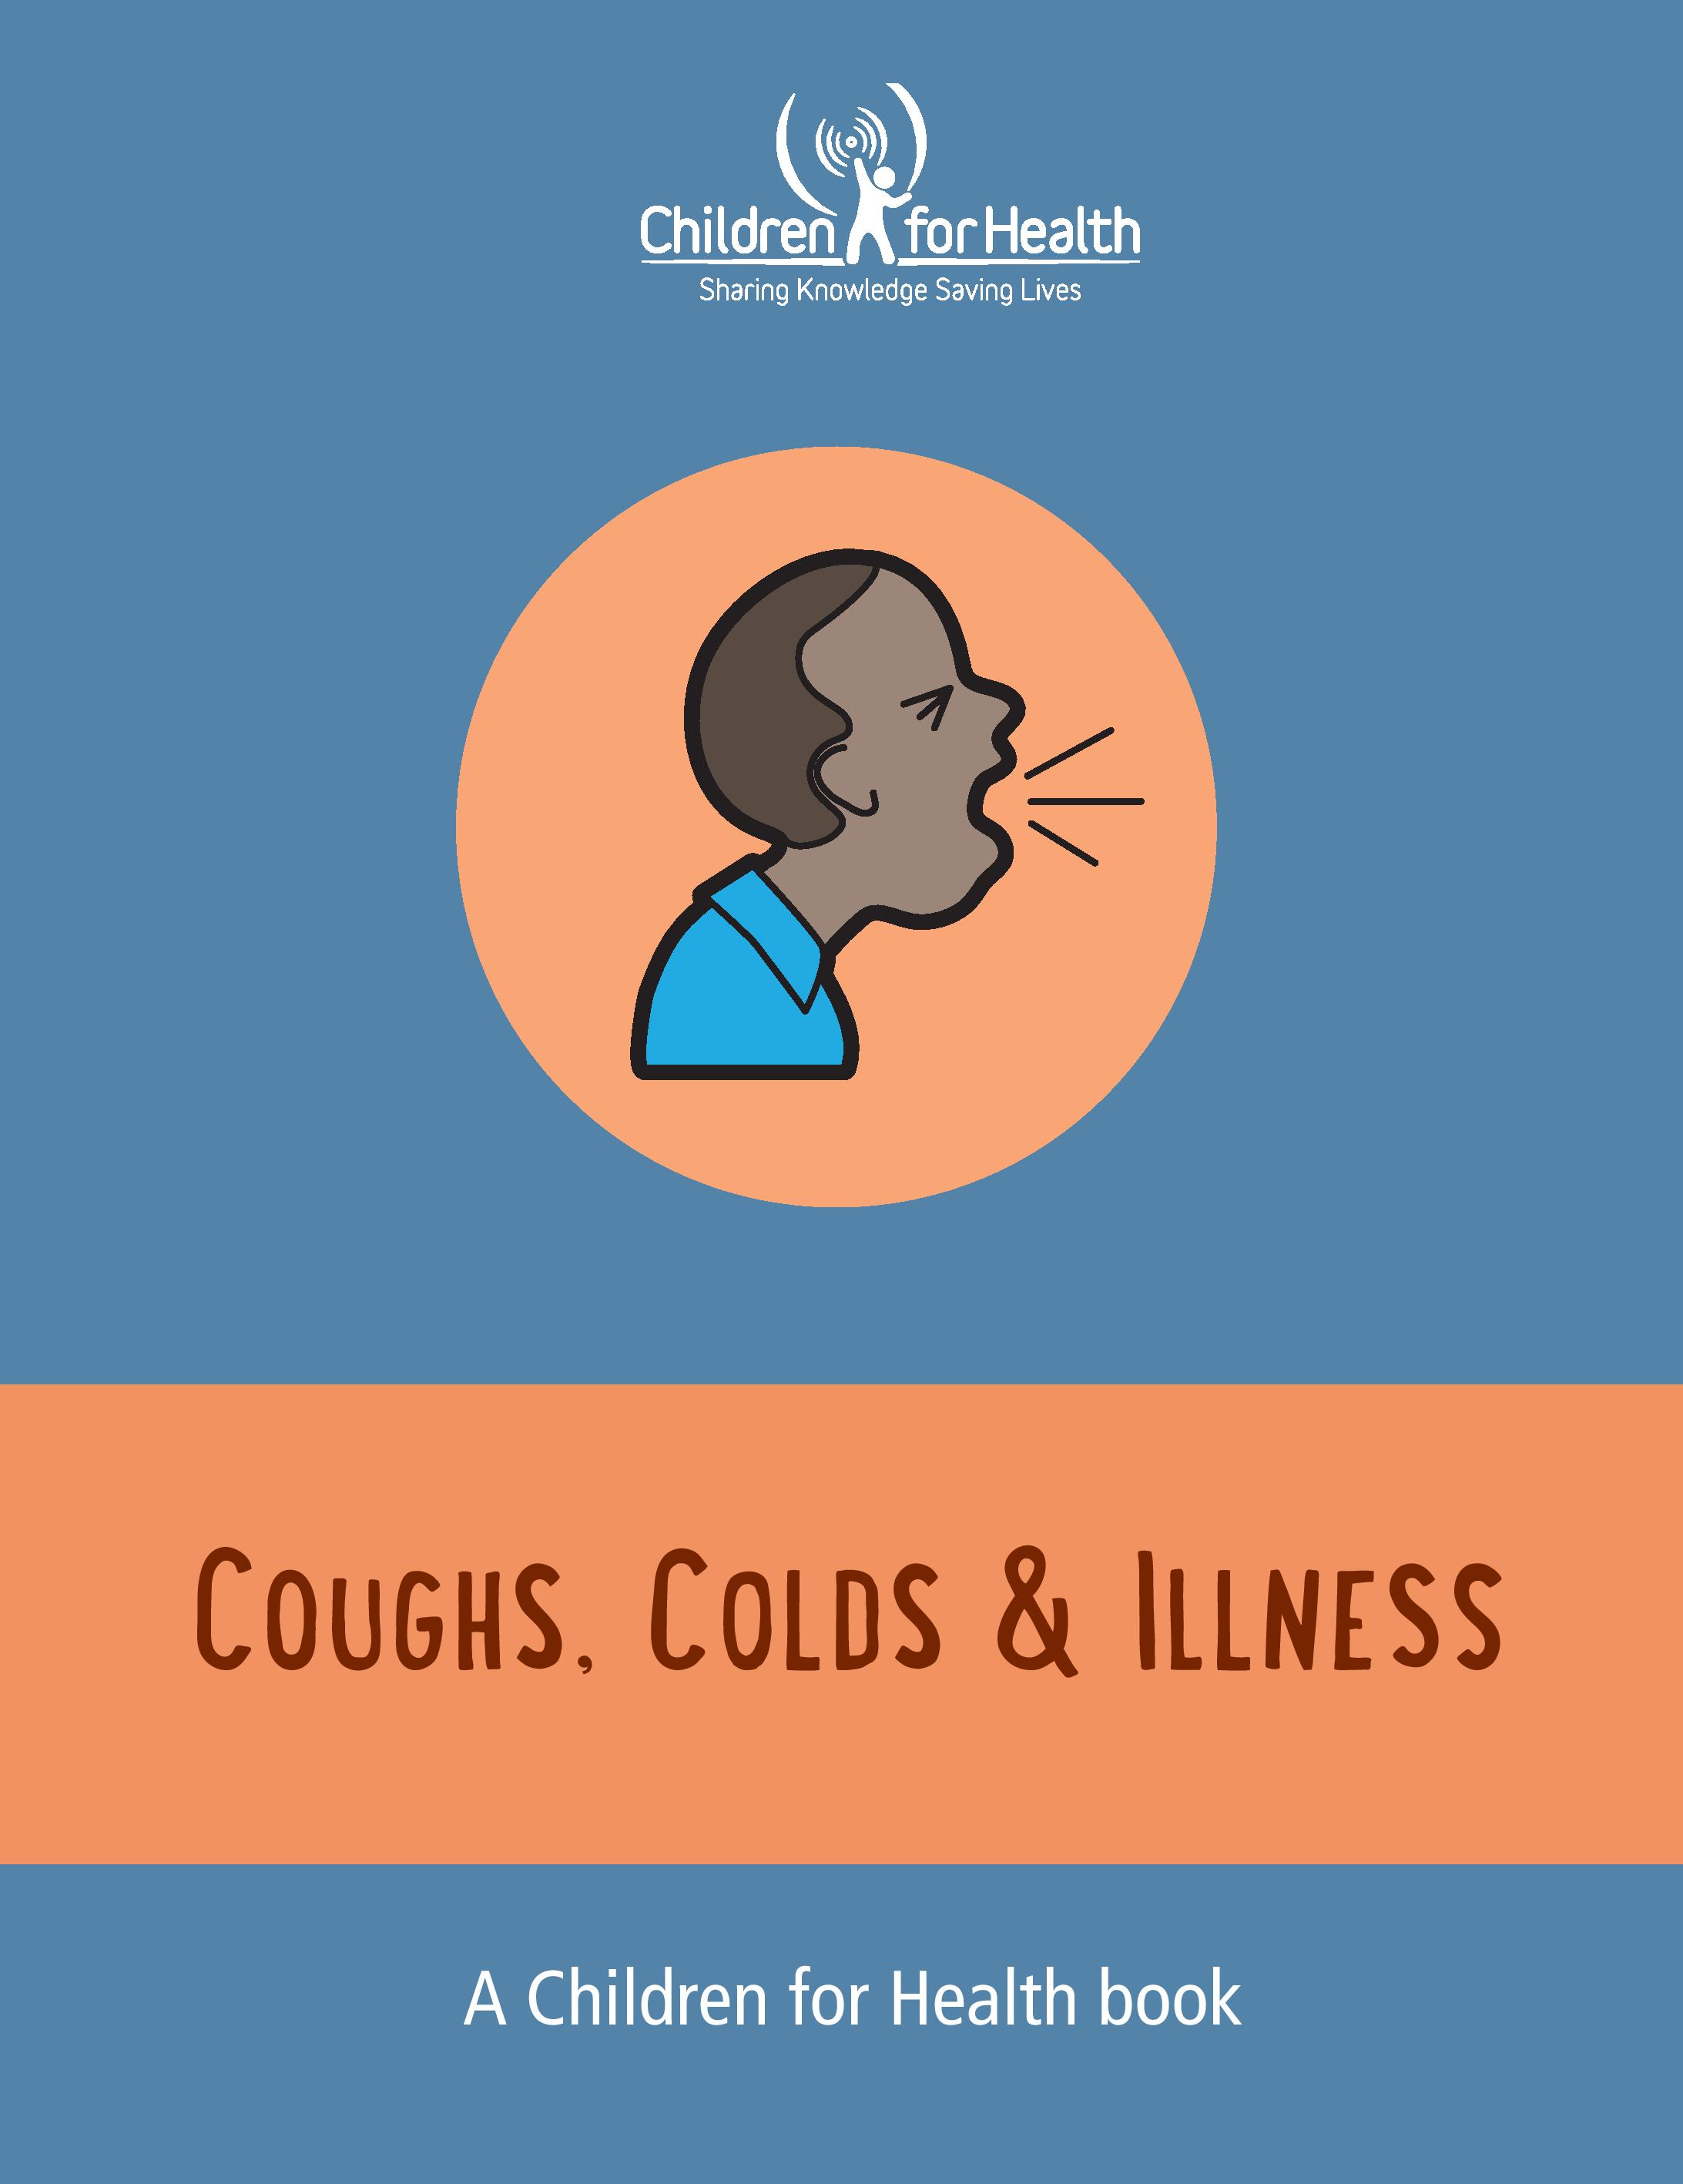 A book cover, it is blue with orange blocks featuring a black child coughing and the text, Coughs, Colds & Illness, a Children for Health book.